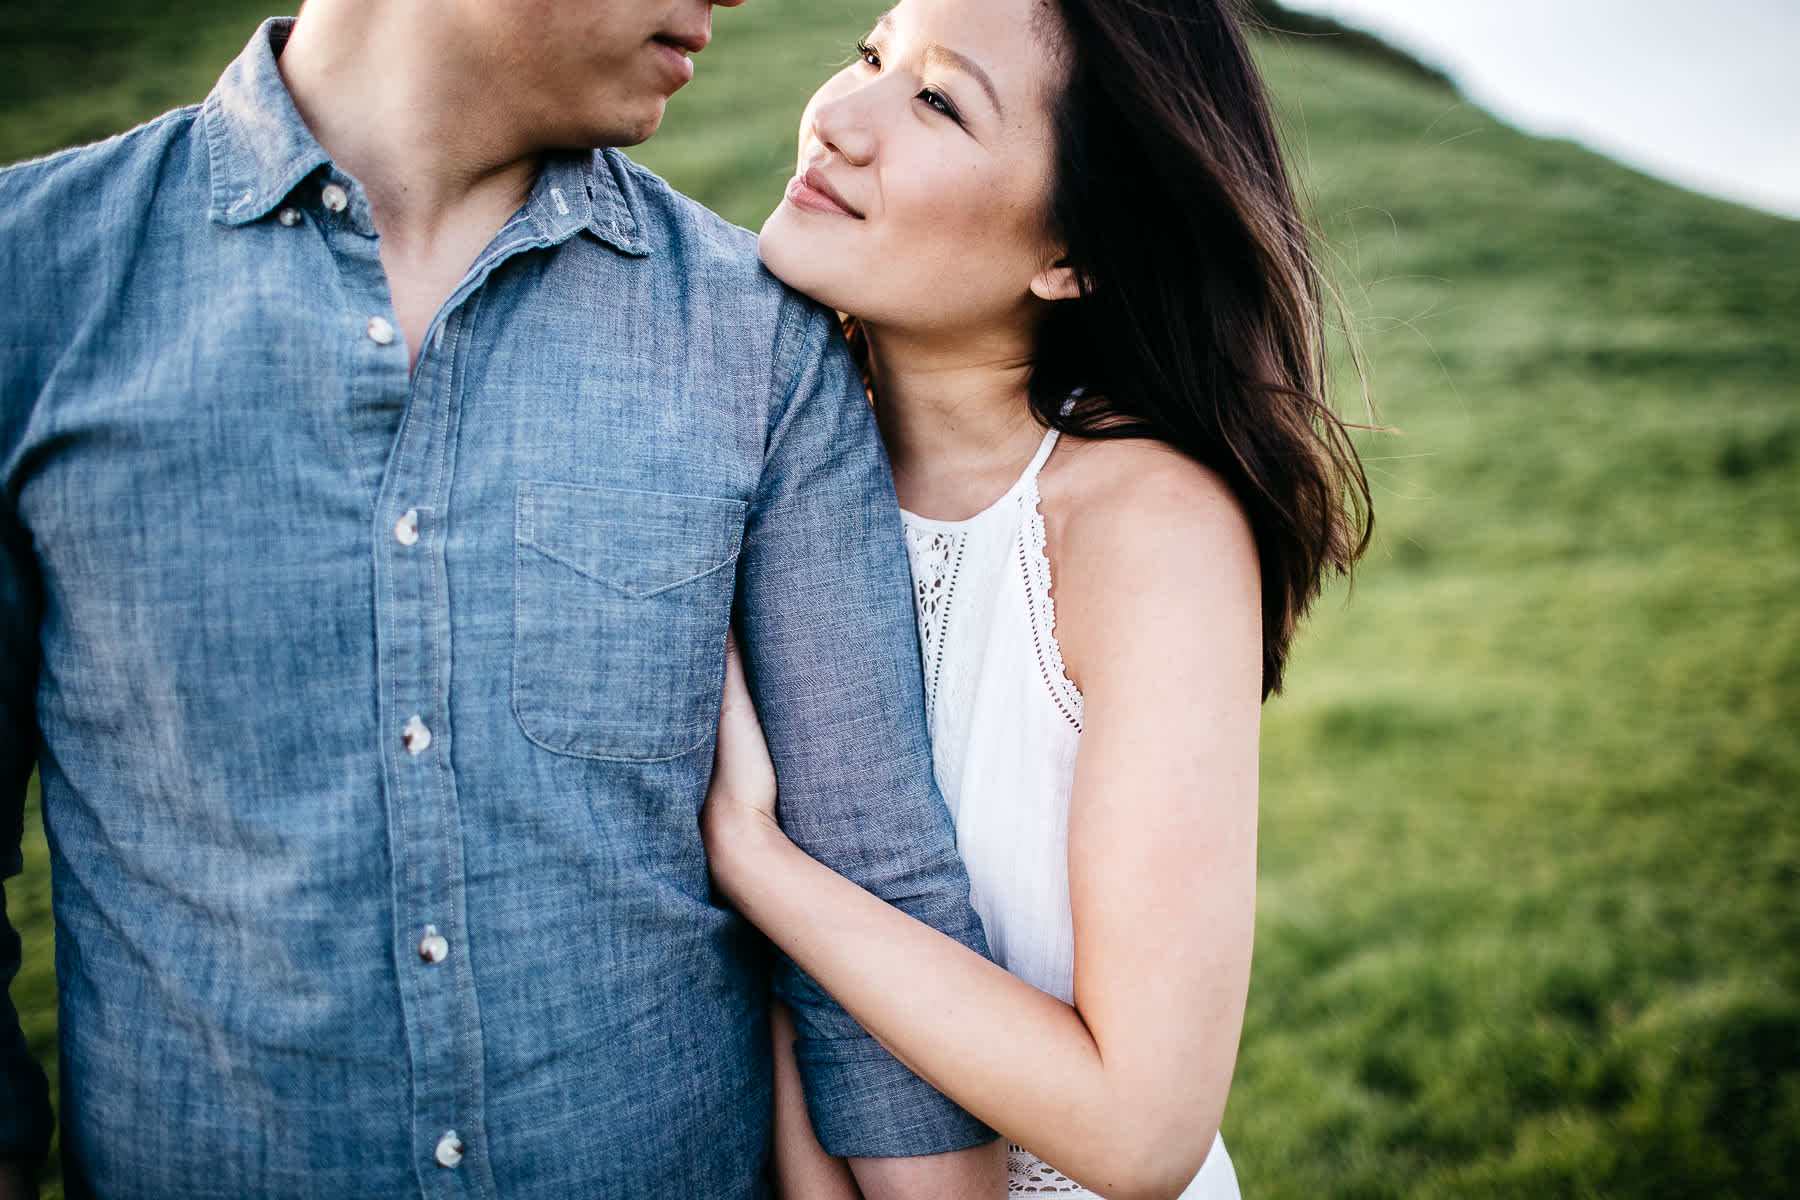 oakland-california-lifestyle-engagment-session-redwood-hills-54